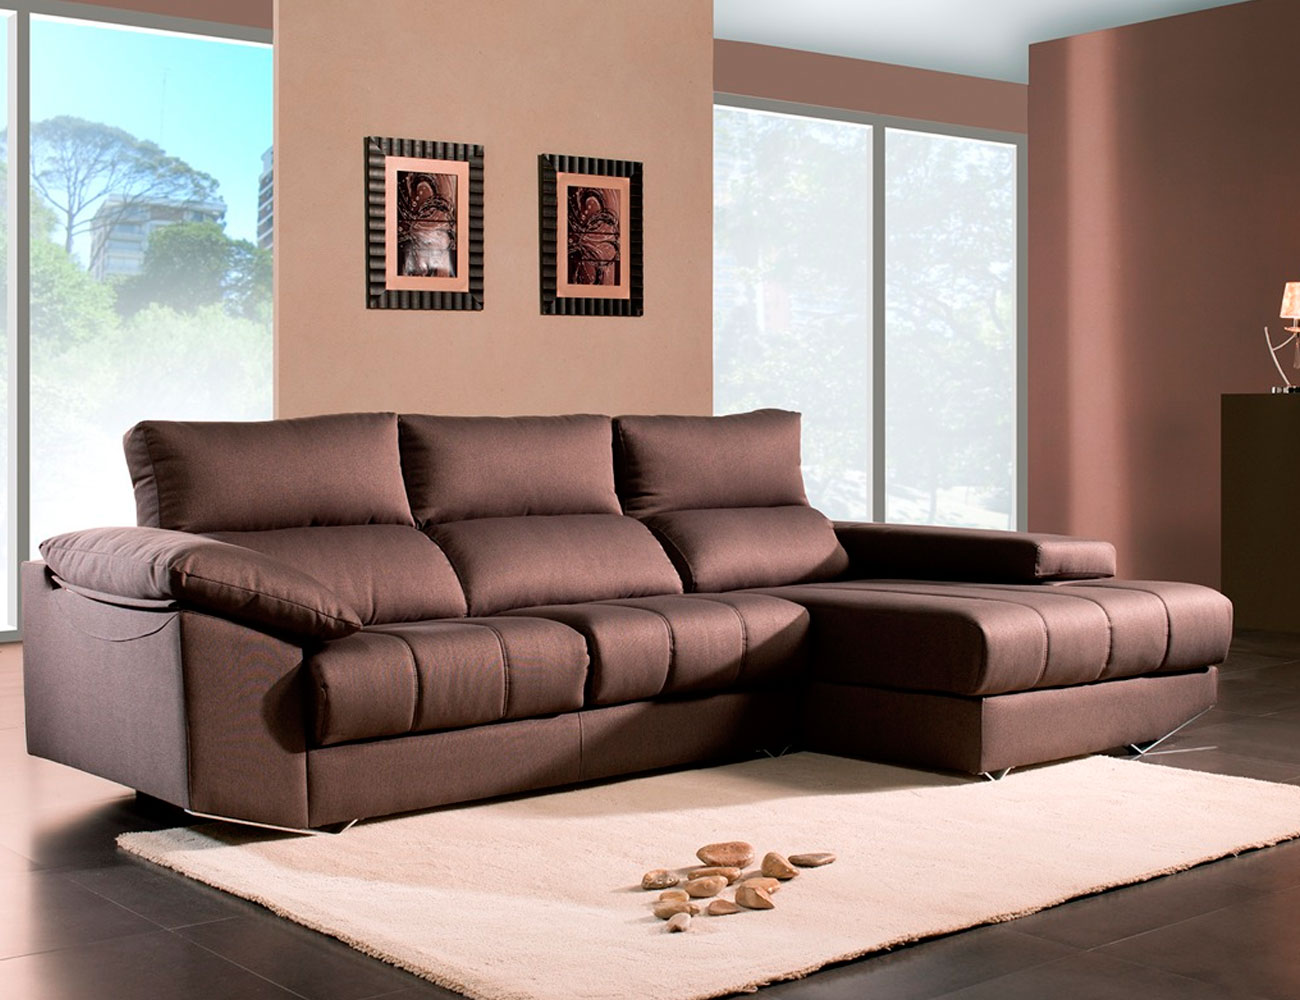 Sofa chaiselongue moderno brazo mecanico22